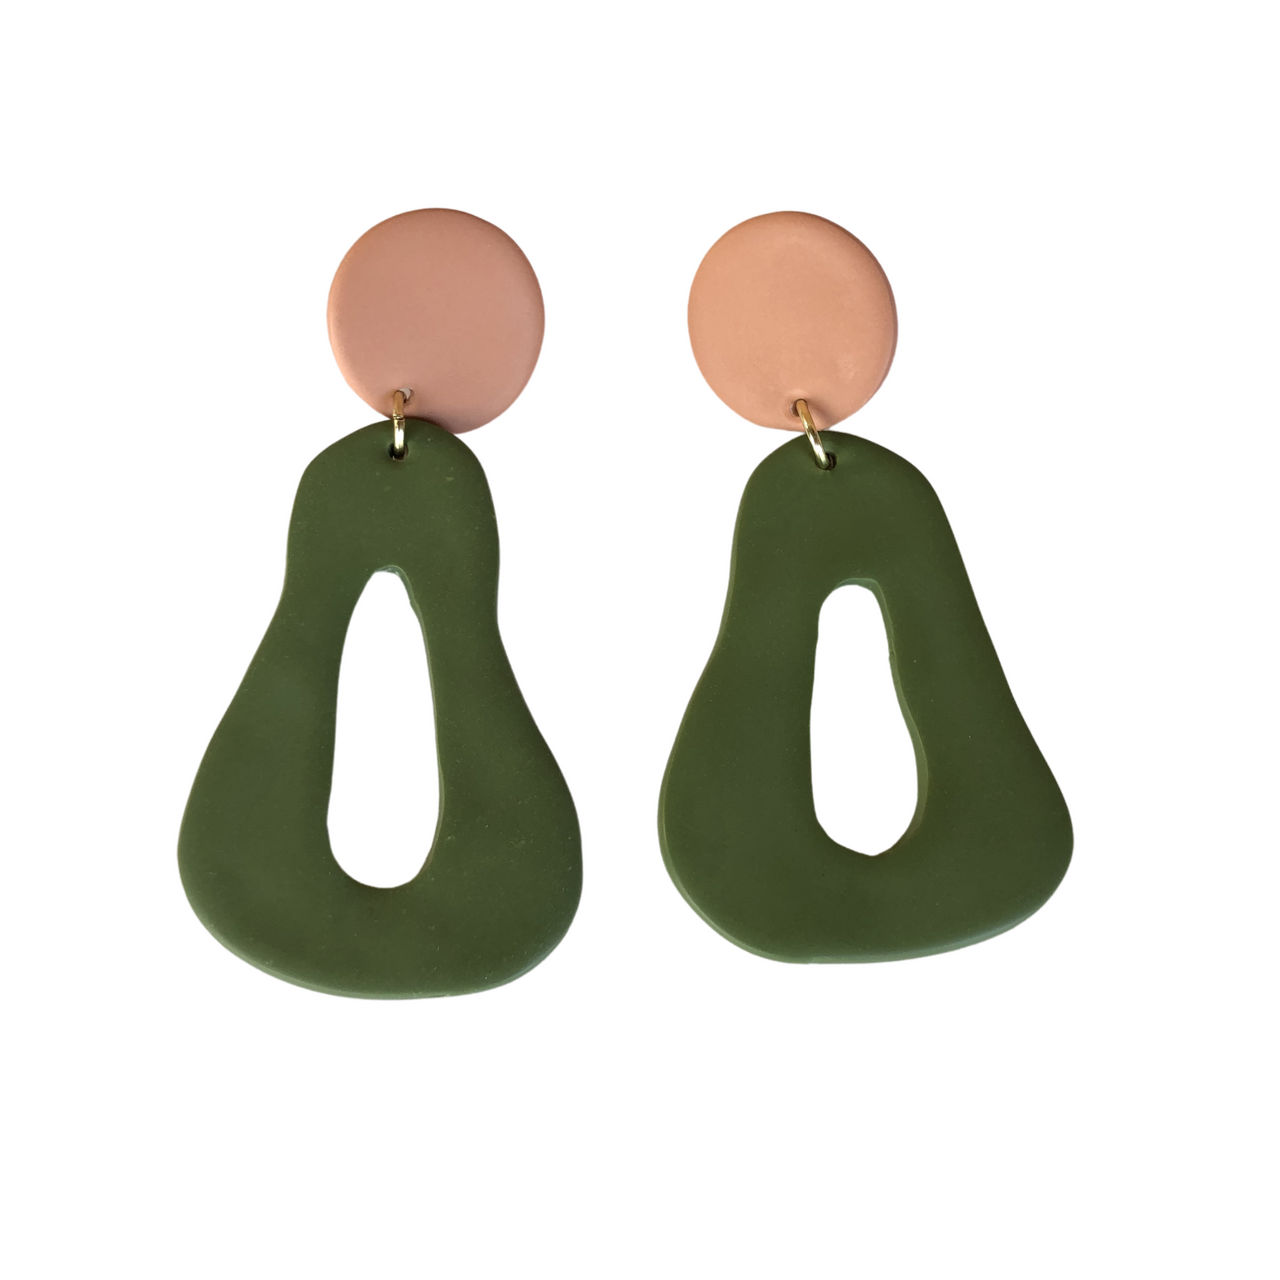 Clay Hourglass Hoops Blush/Olive